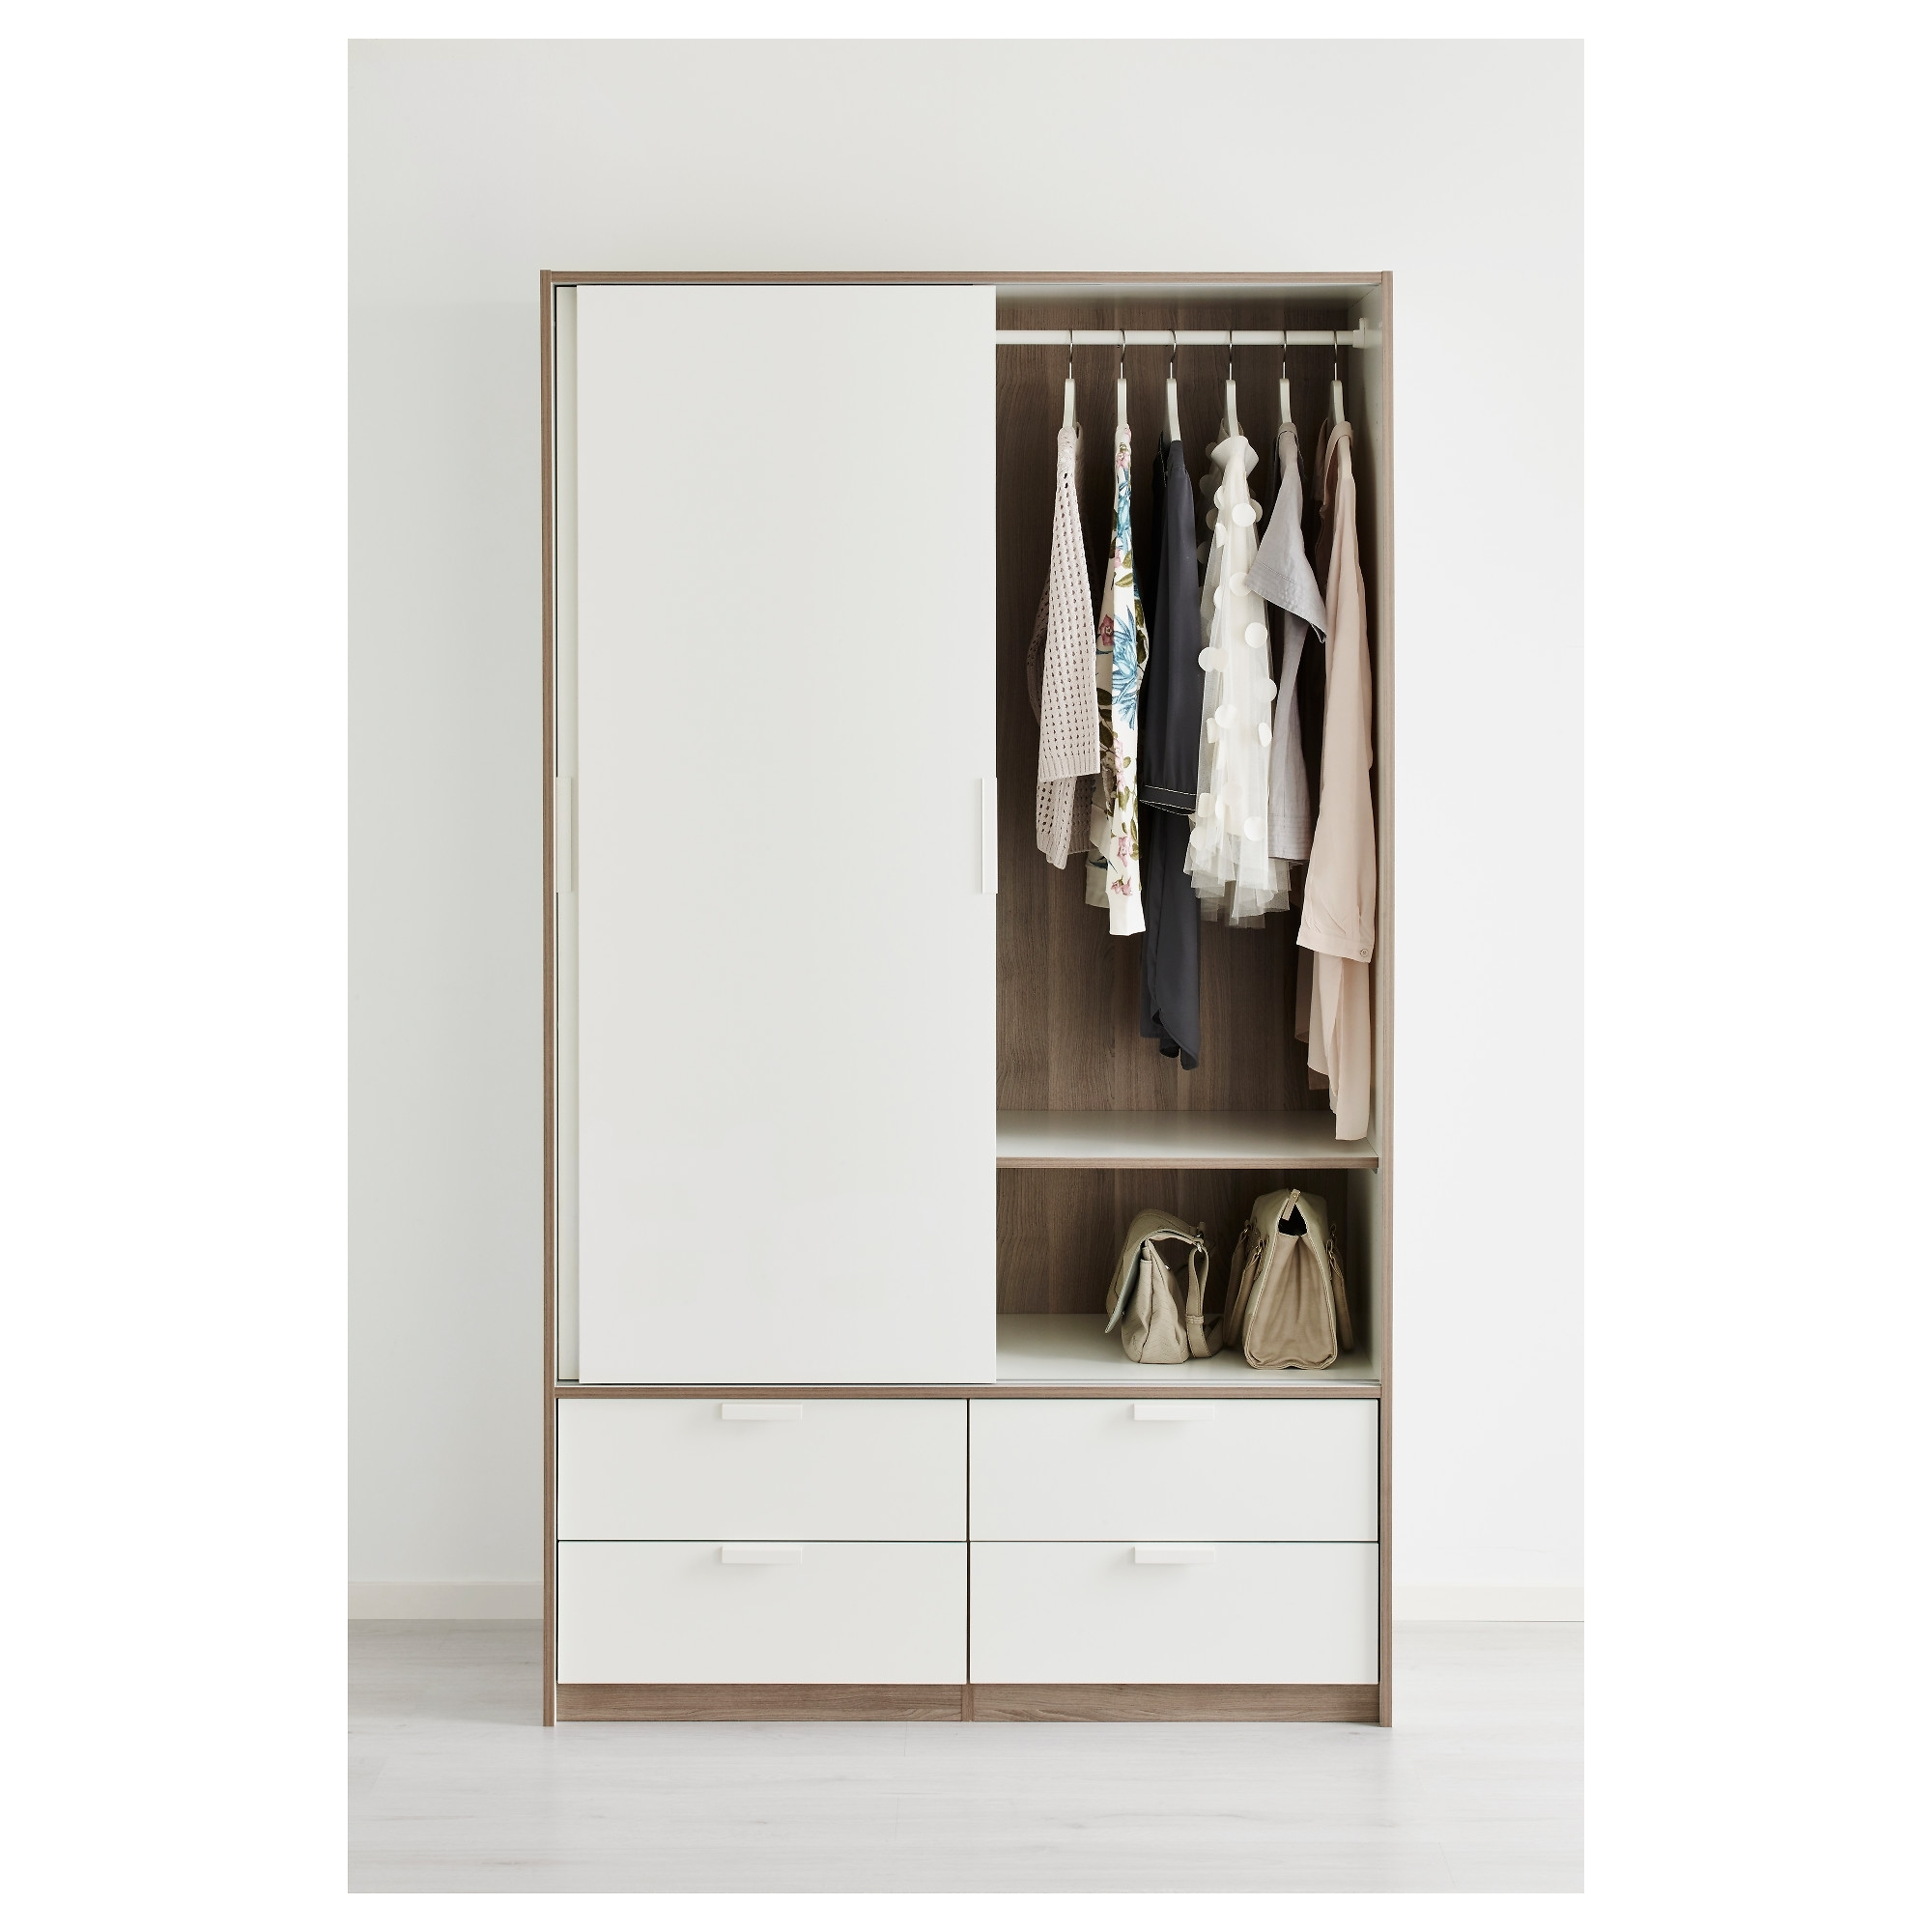 Wardrobes With Shelves And Drawers Regarding Trendy Trysil Wardrobe W Sliding Doors/4 Drawers White 118X61X202 Cm – Ikea (View 12 of 15)